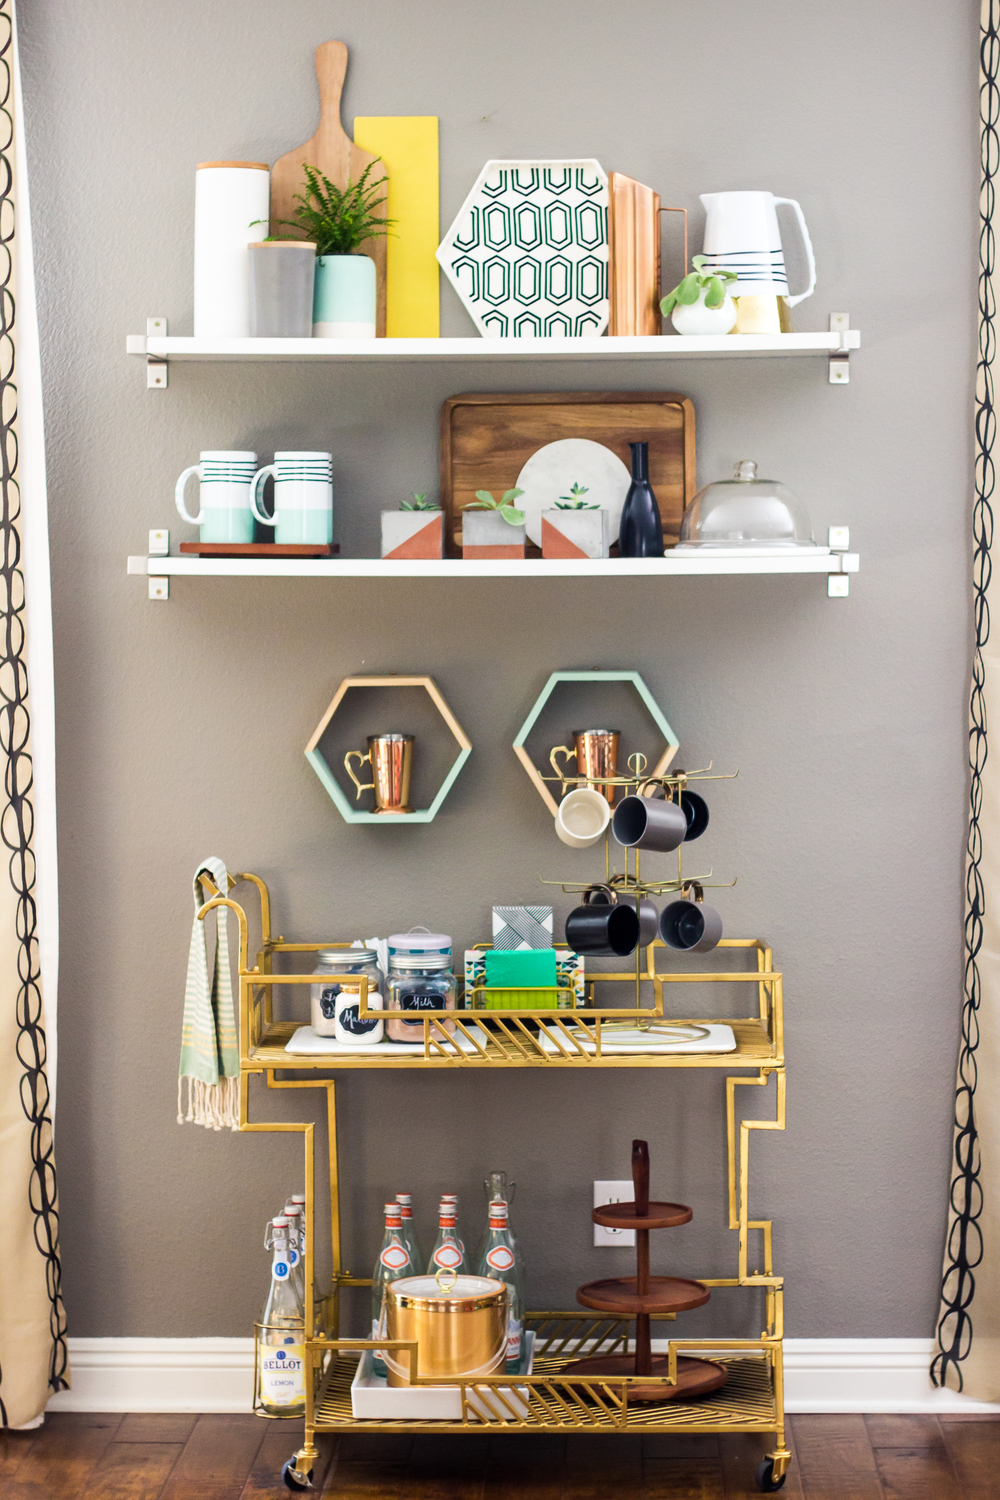 Youu0027ve Seen This Bar Cart Before. I Had To Share It Again Because I Just  Love How It Is Styled So Much! Here, Bobette Went For A Ferm Living  Inspired Look: ...